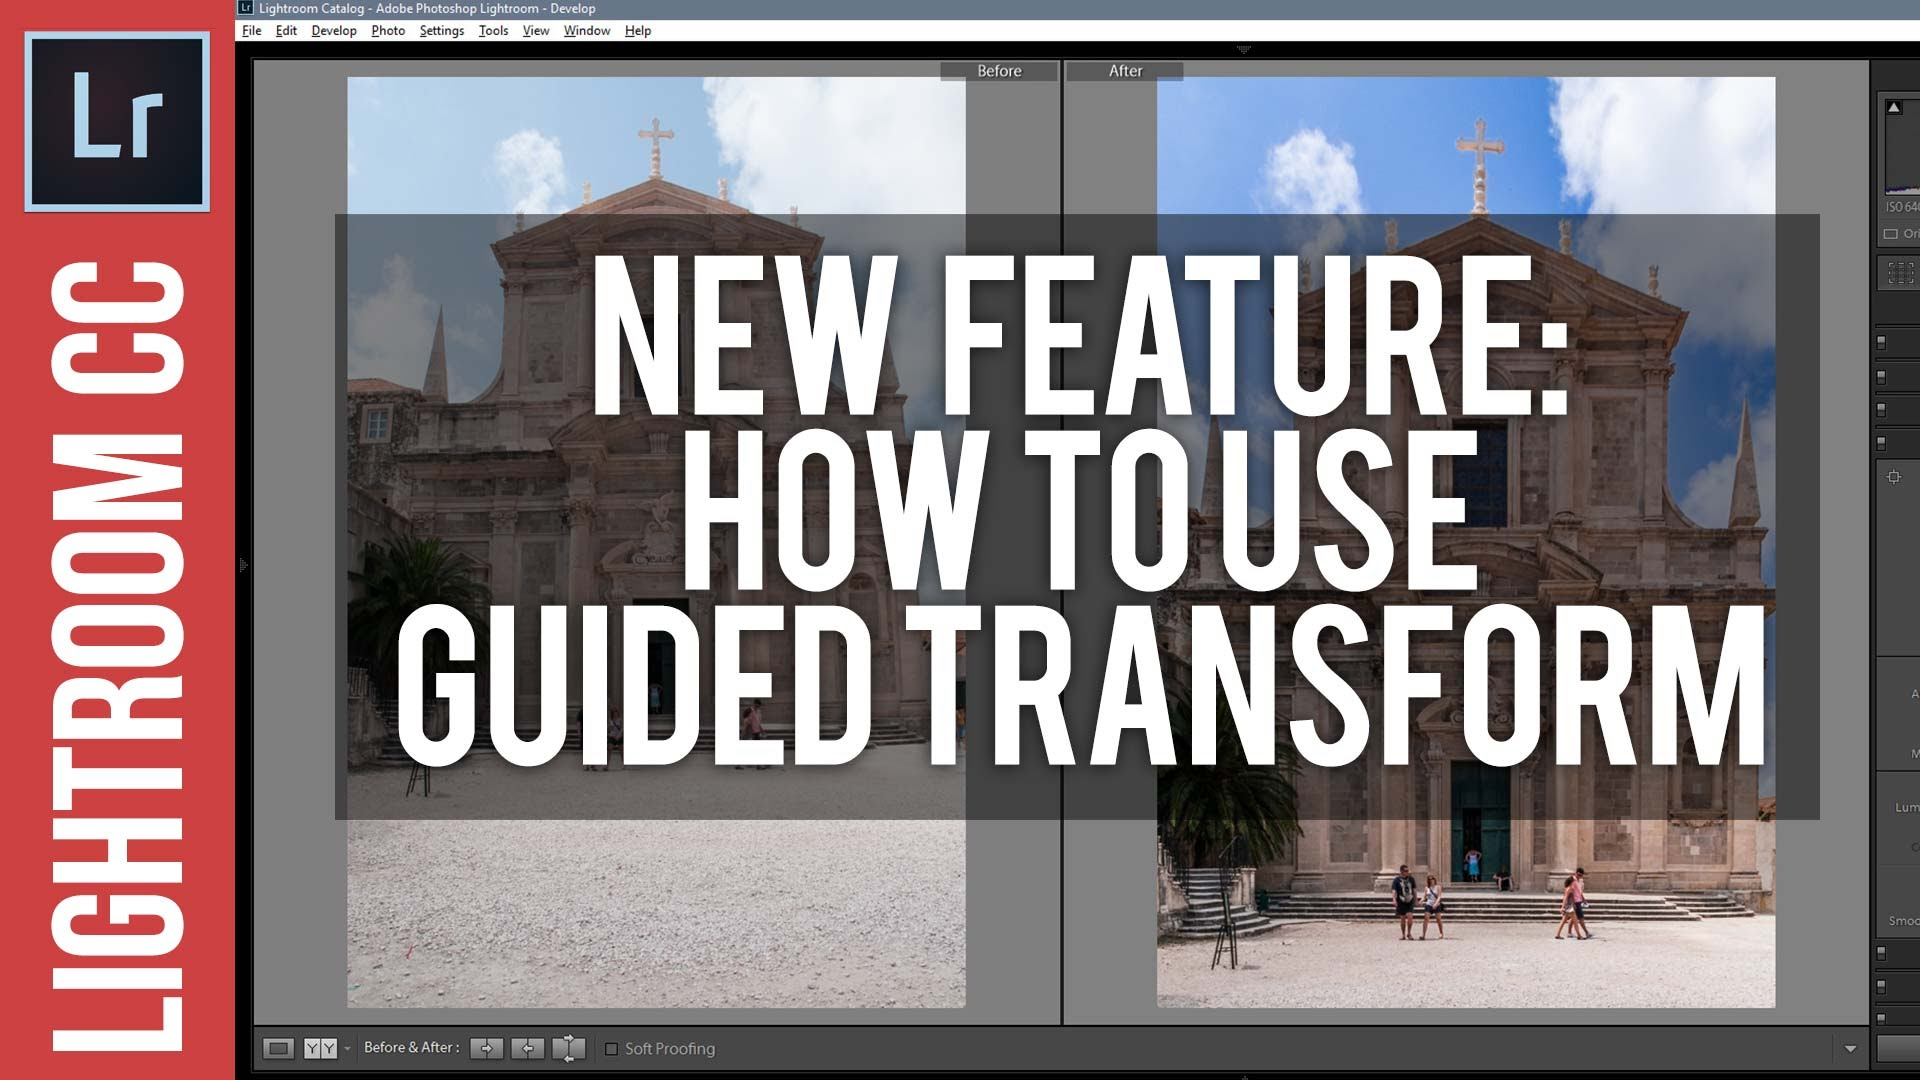 How To Use The New Guided Transform in Adobe Lightroom